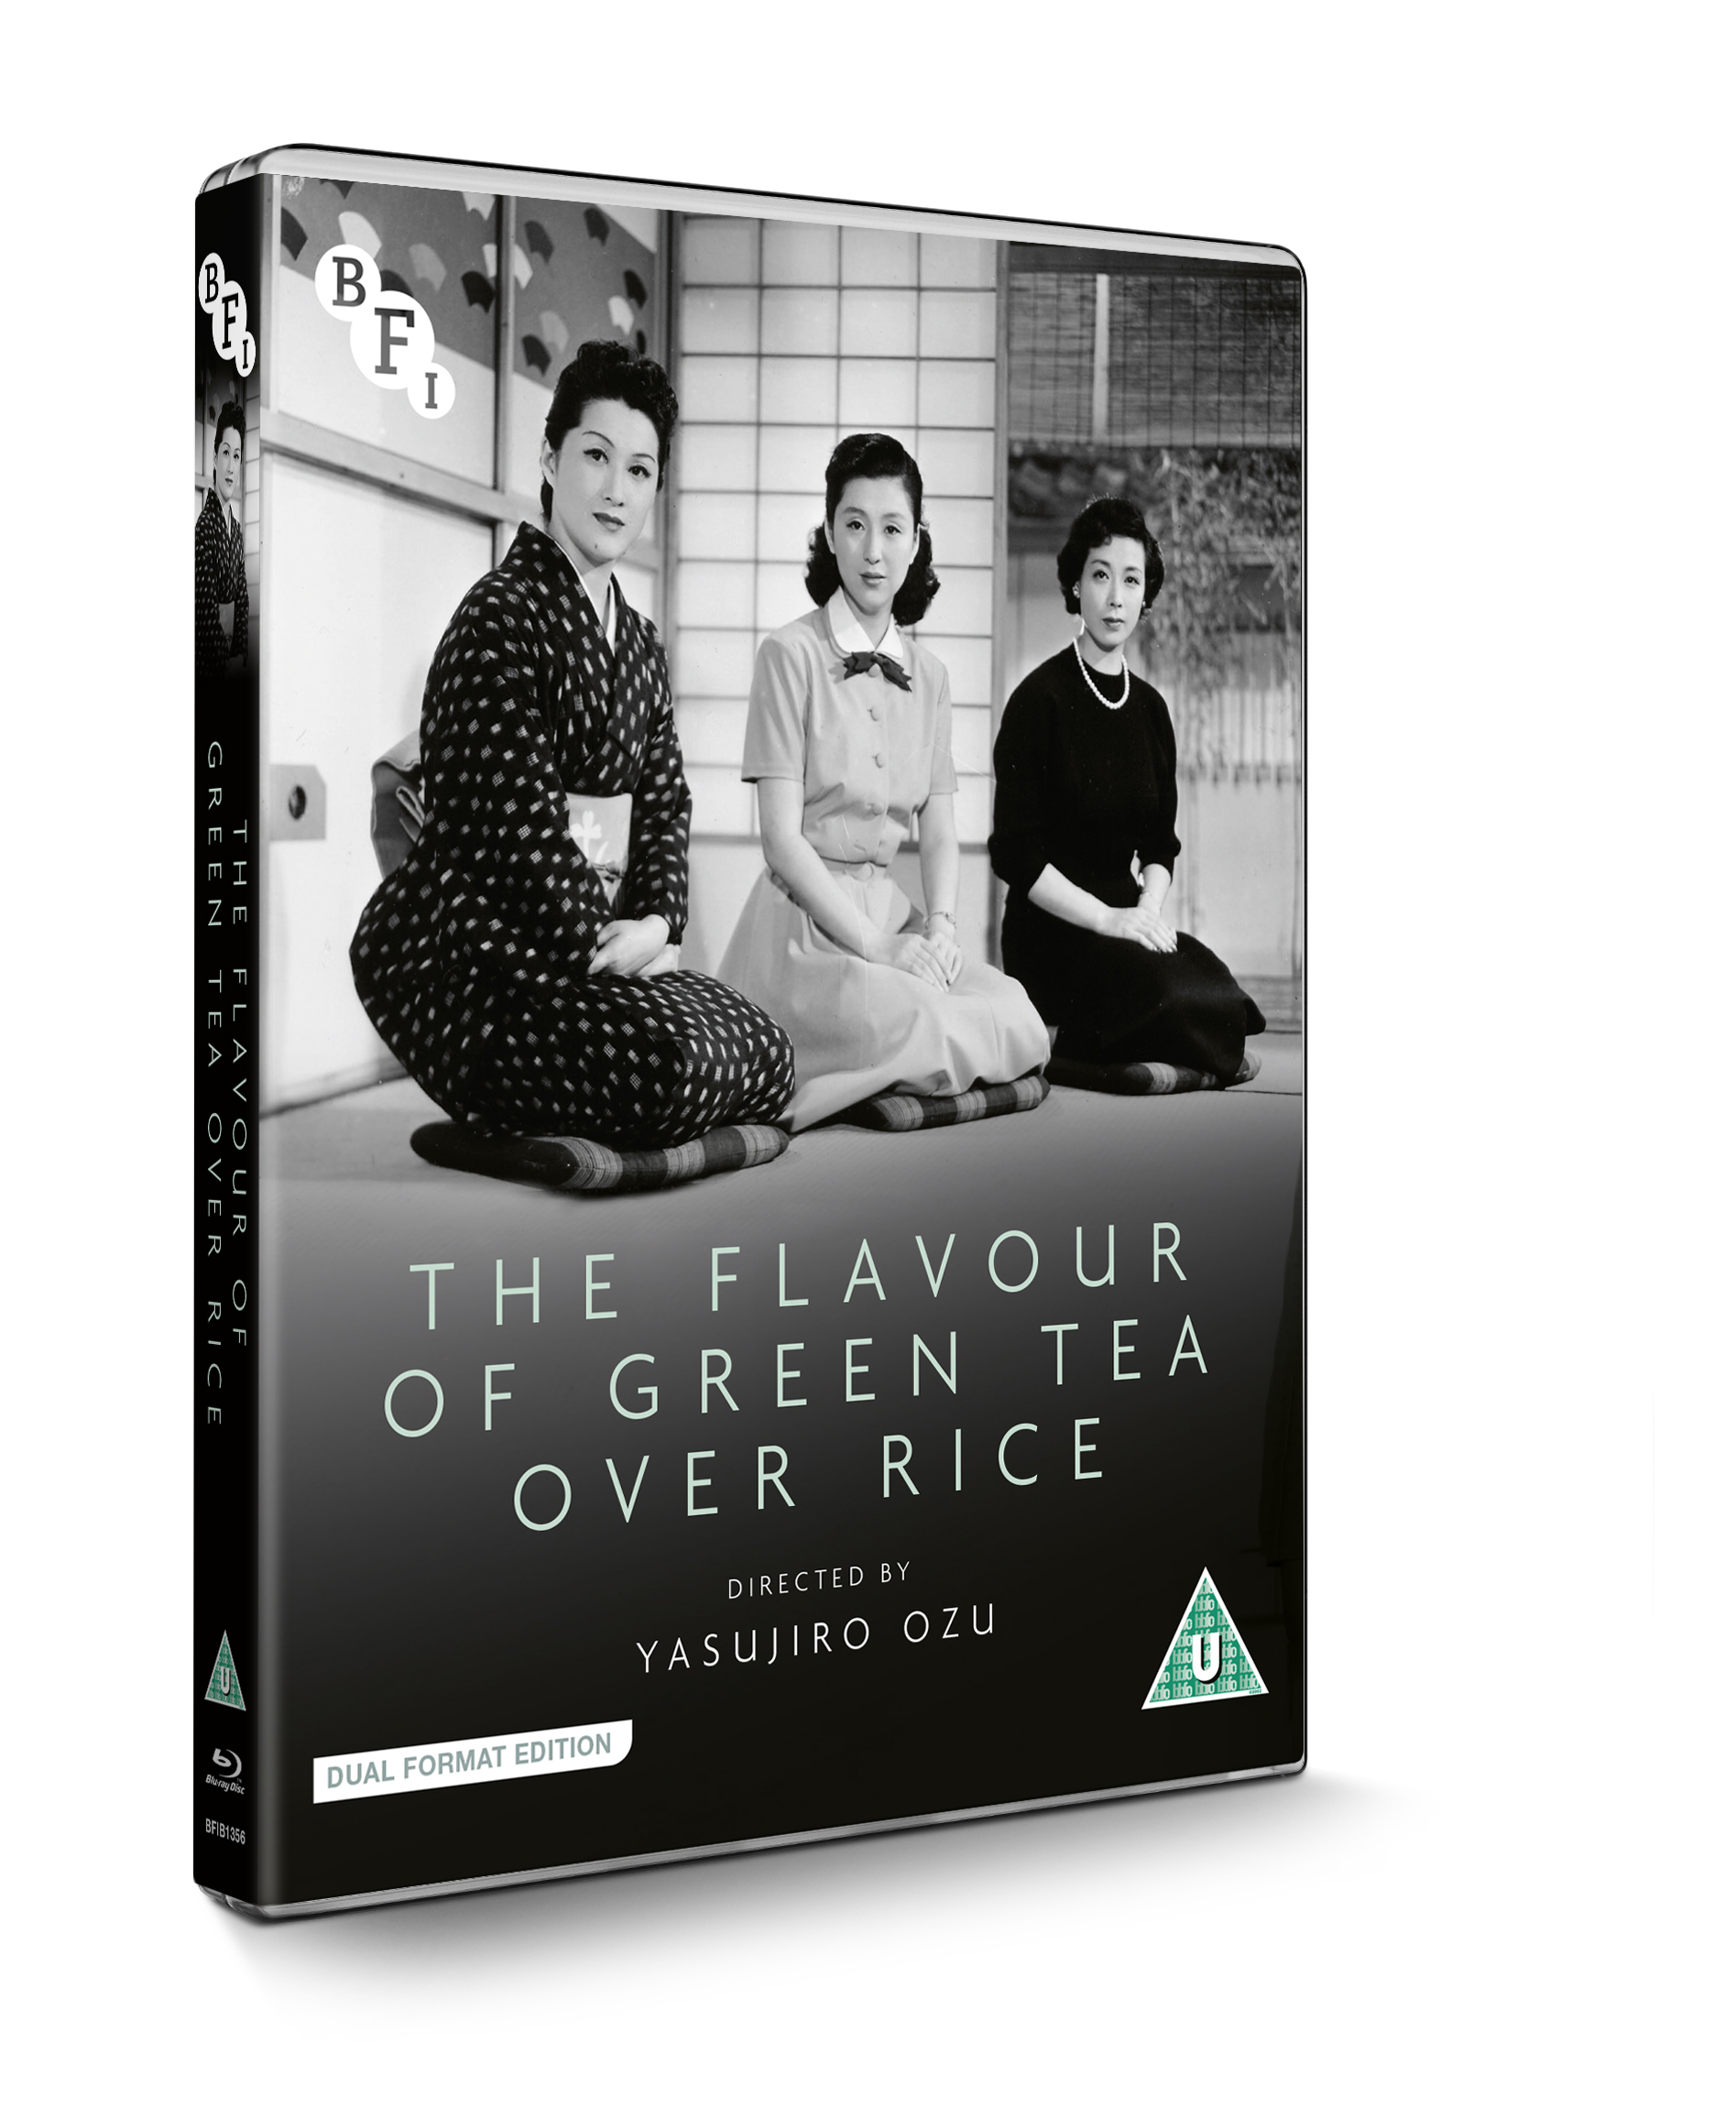 Buy The Flavour of Green Tea Over Rice (Dual Format Edition)